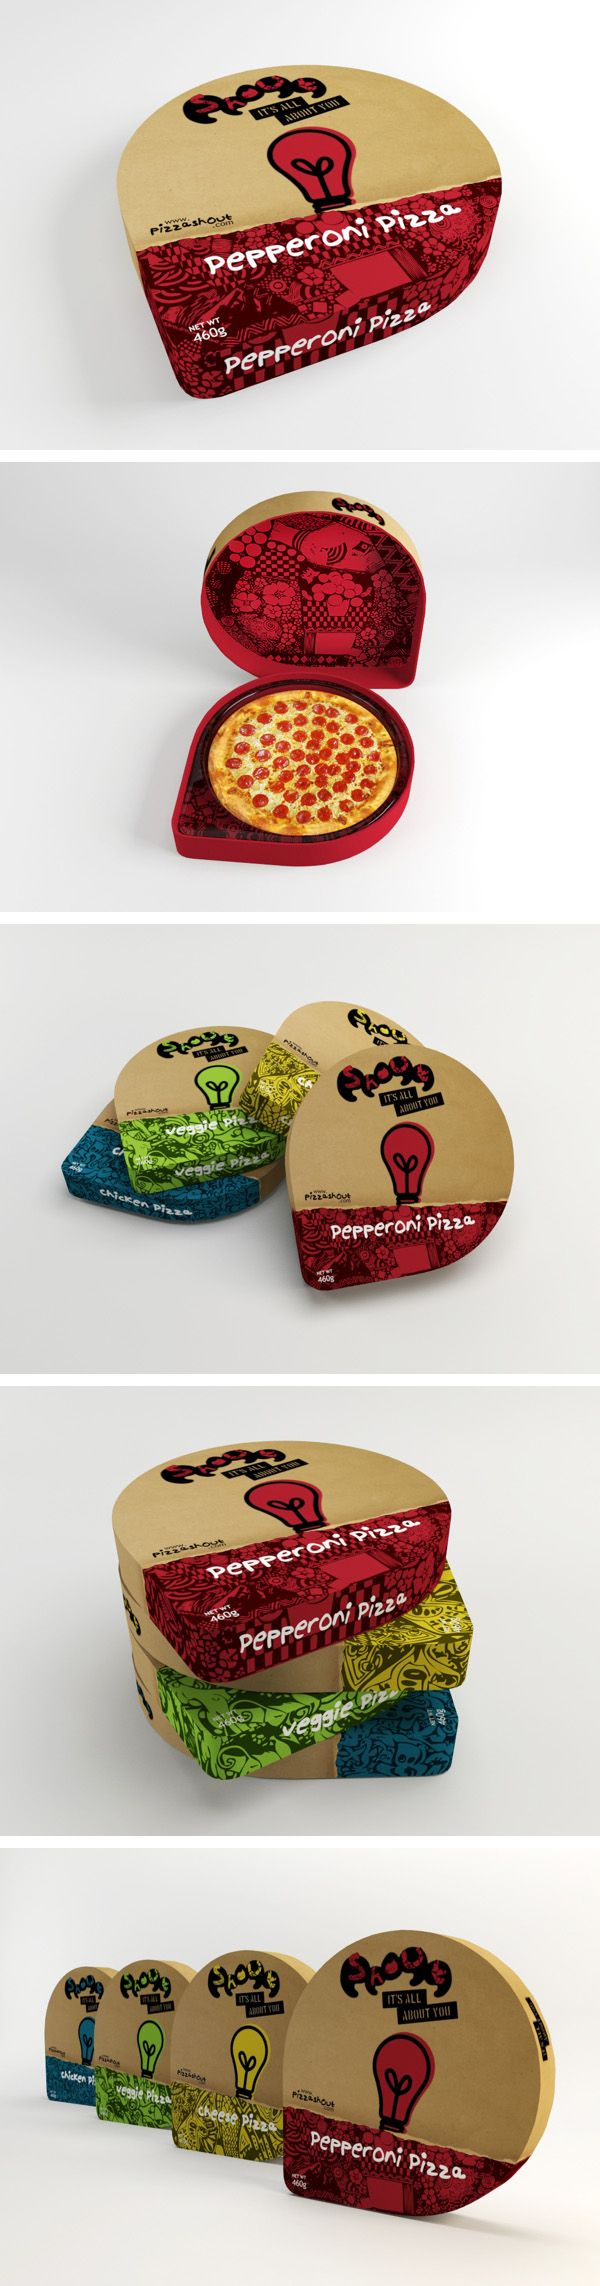 Pizza Shout by Marcus Vinícius Goulart Matos on Behance PD | design package box food